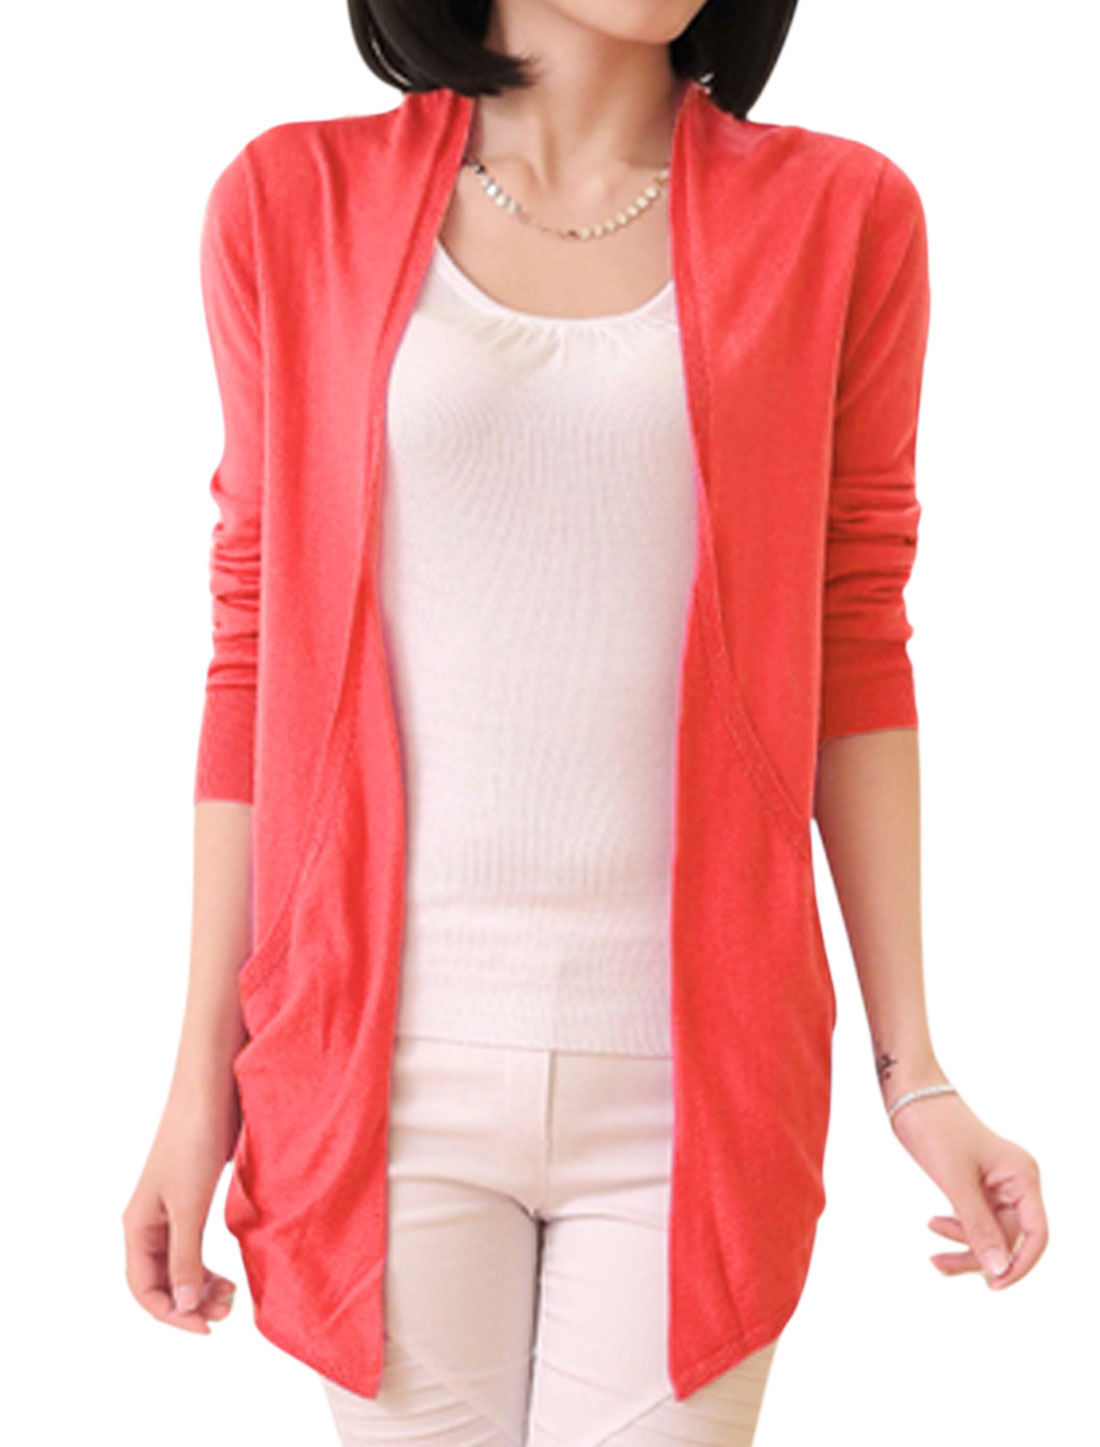 Lady Buttonless Front Hollow Out Back Cardigan Watermelon Red S